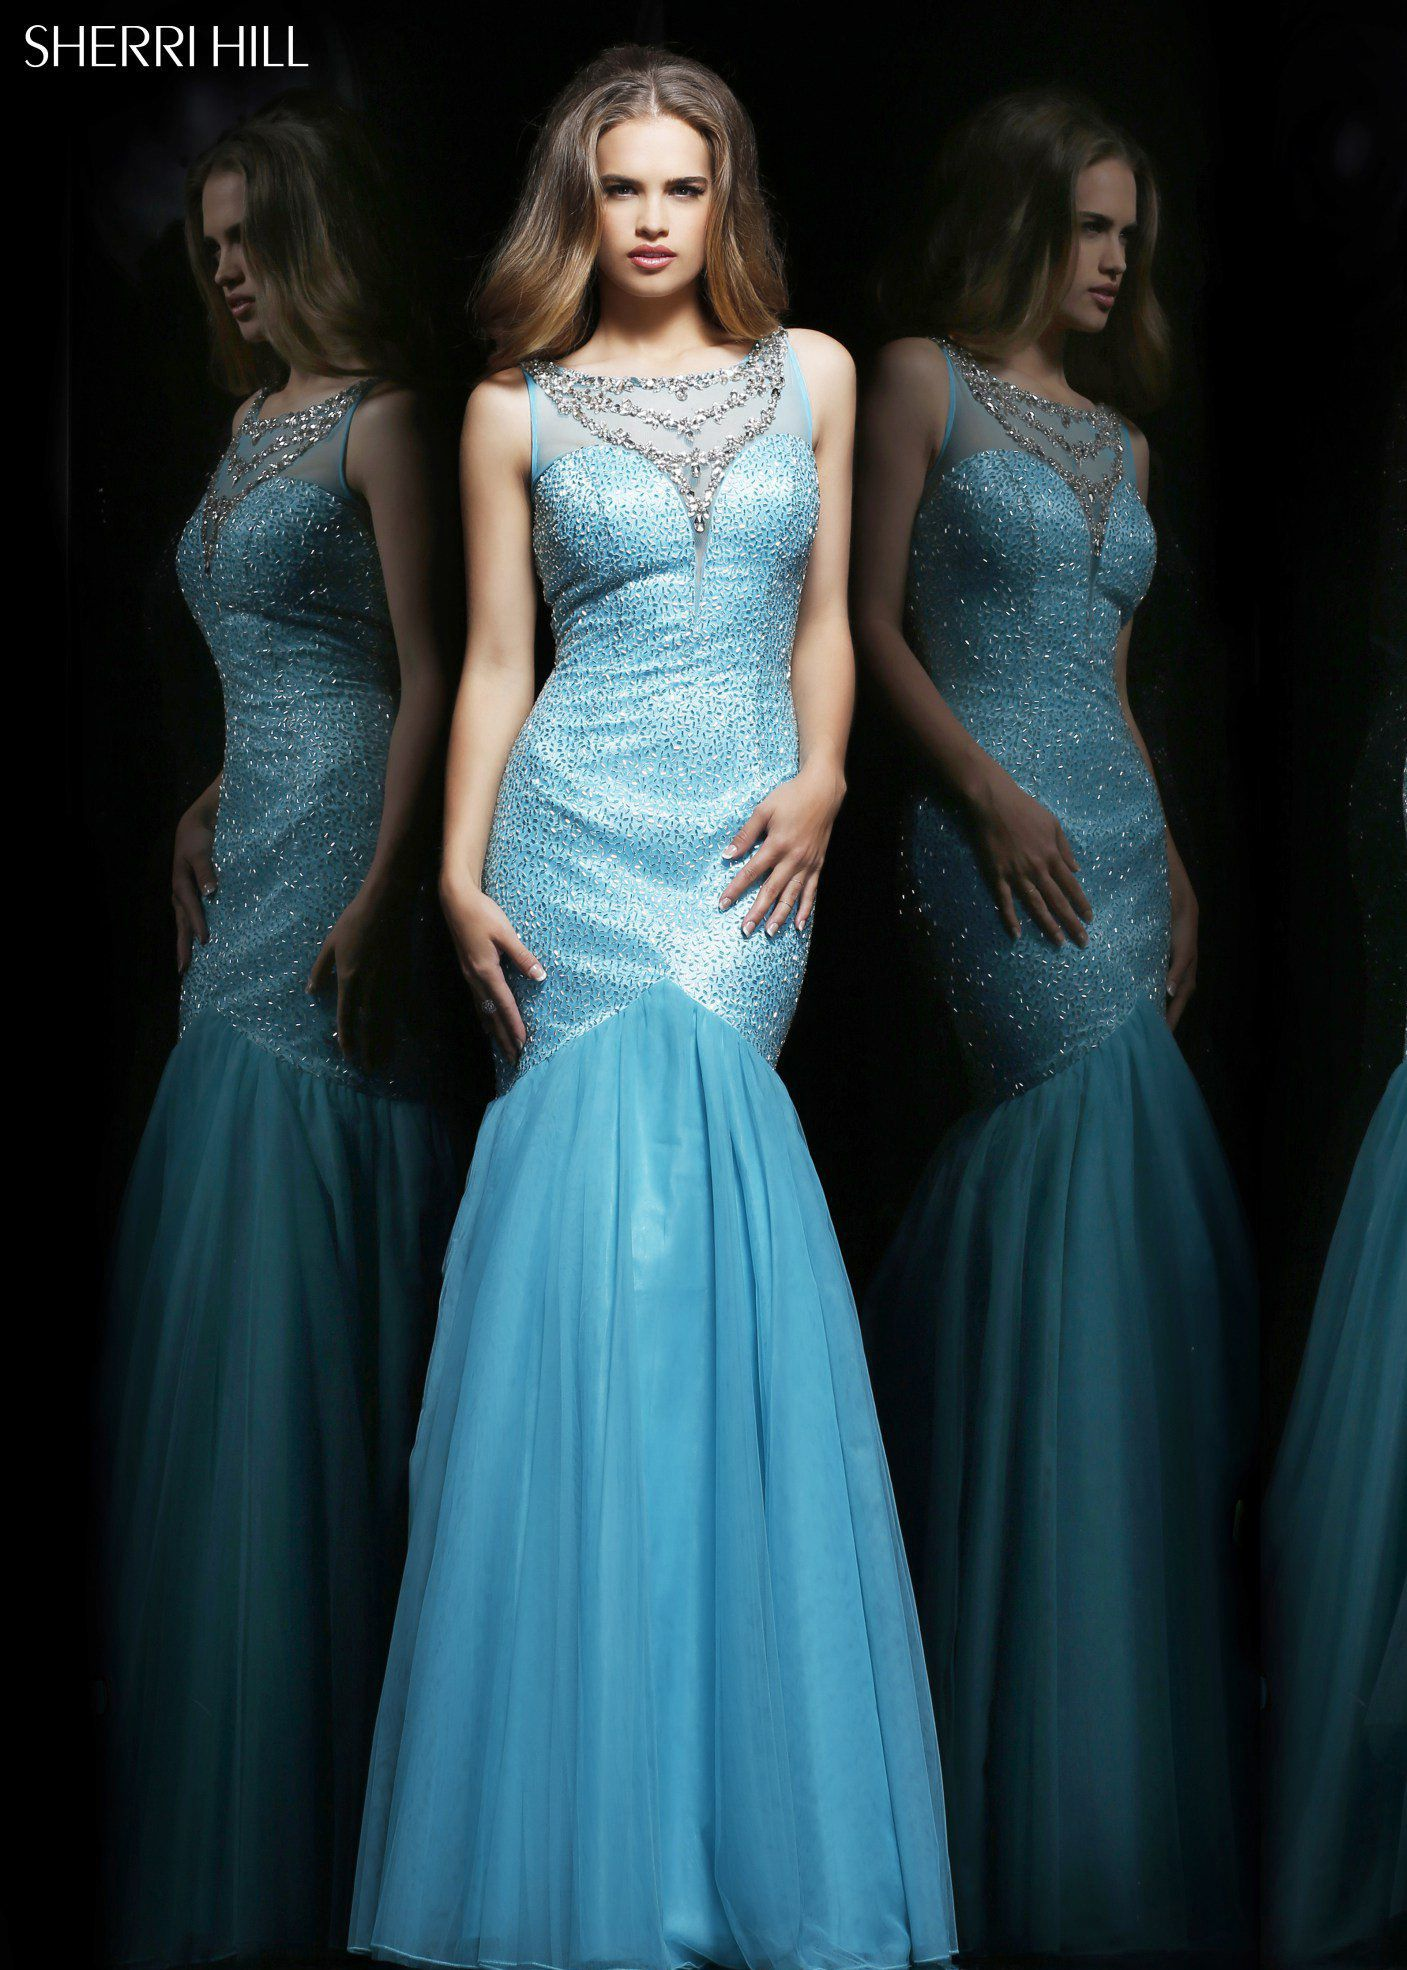 Sherri Hill 11090 - Aqua/Silver Beaded Mermaid Prom Dresses Online ...